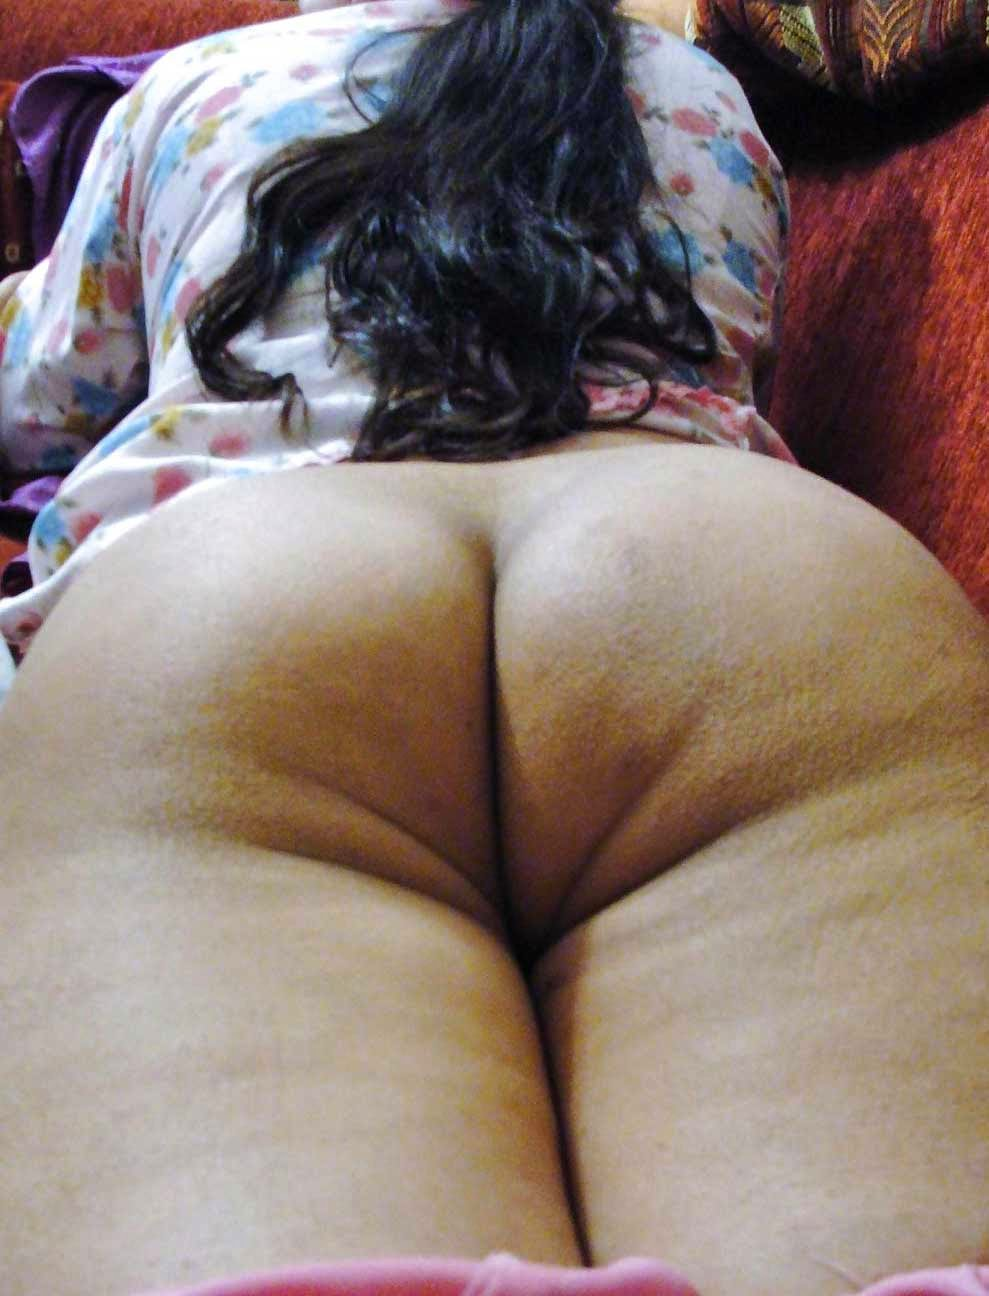 pakistani asses and pussies